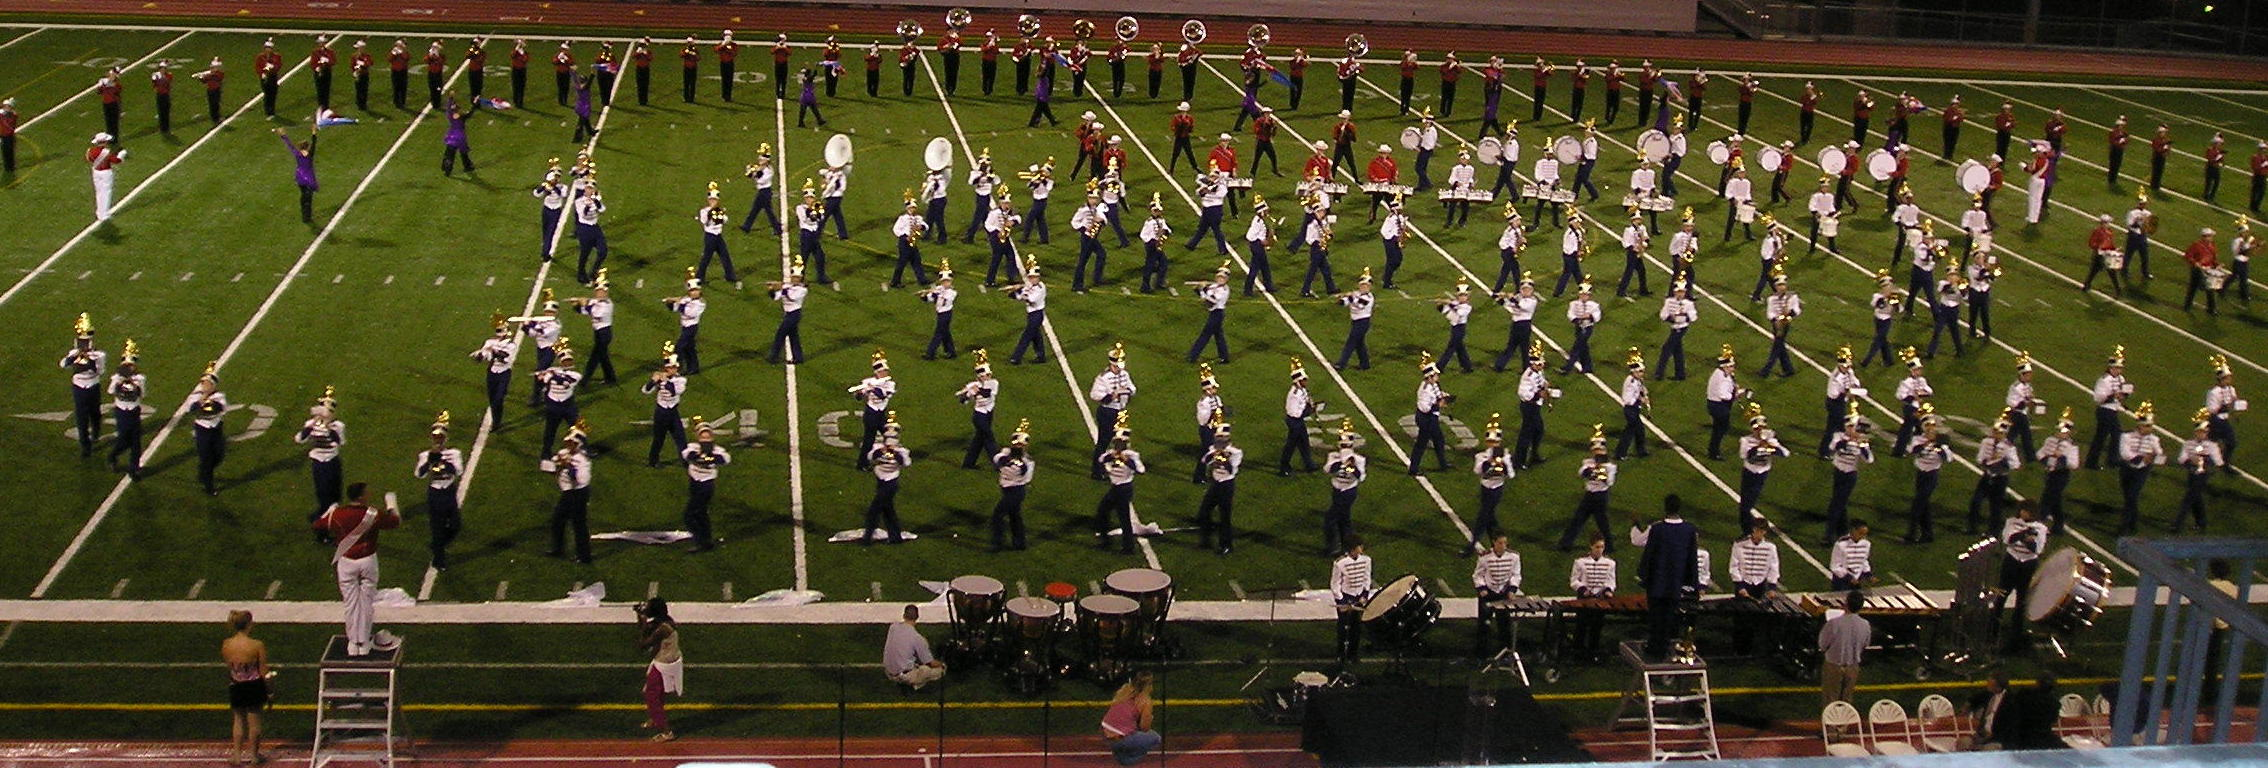 Marching Band Fundamentals Unit Overview